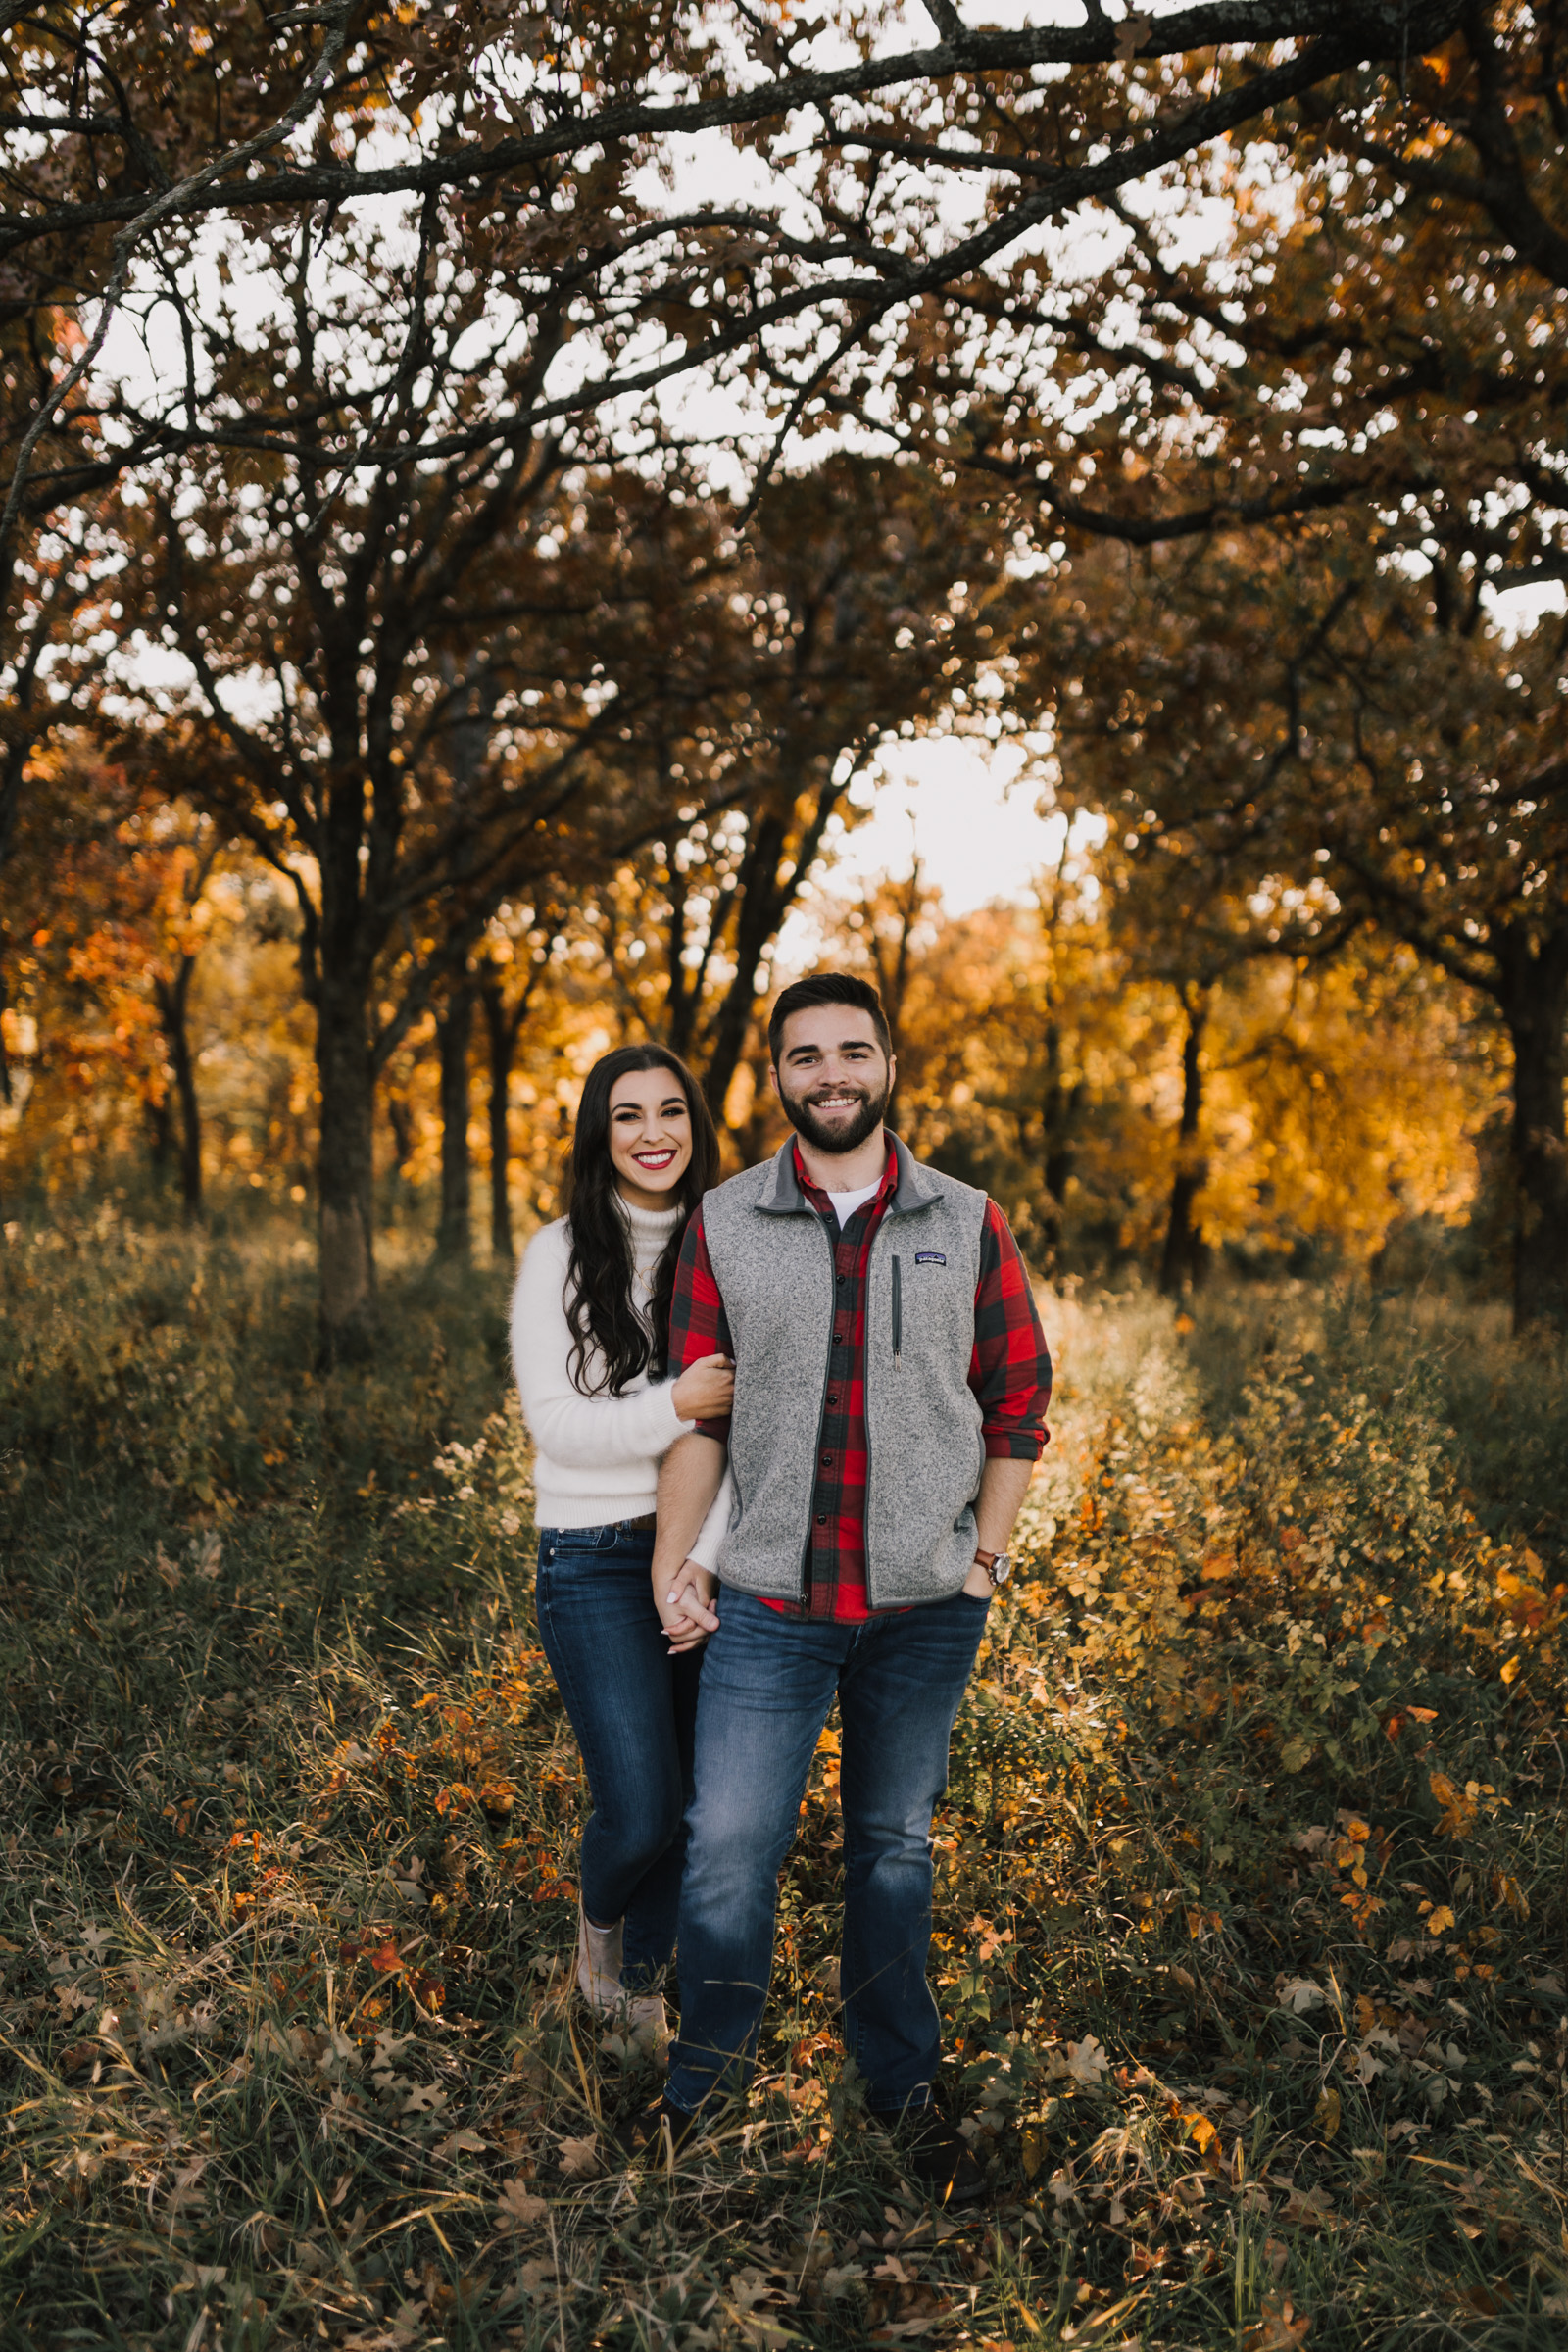 alyssa barletter photography shawnee mission park fall engagement photographer a girl her life blogger sunset photos-1.jpg